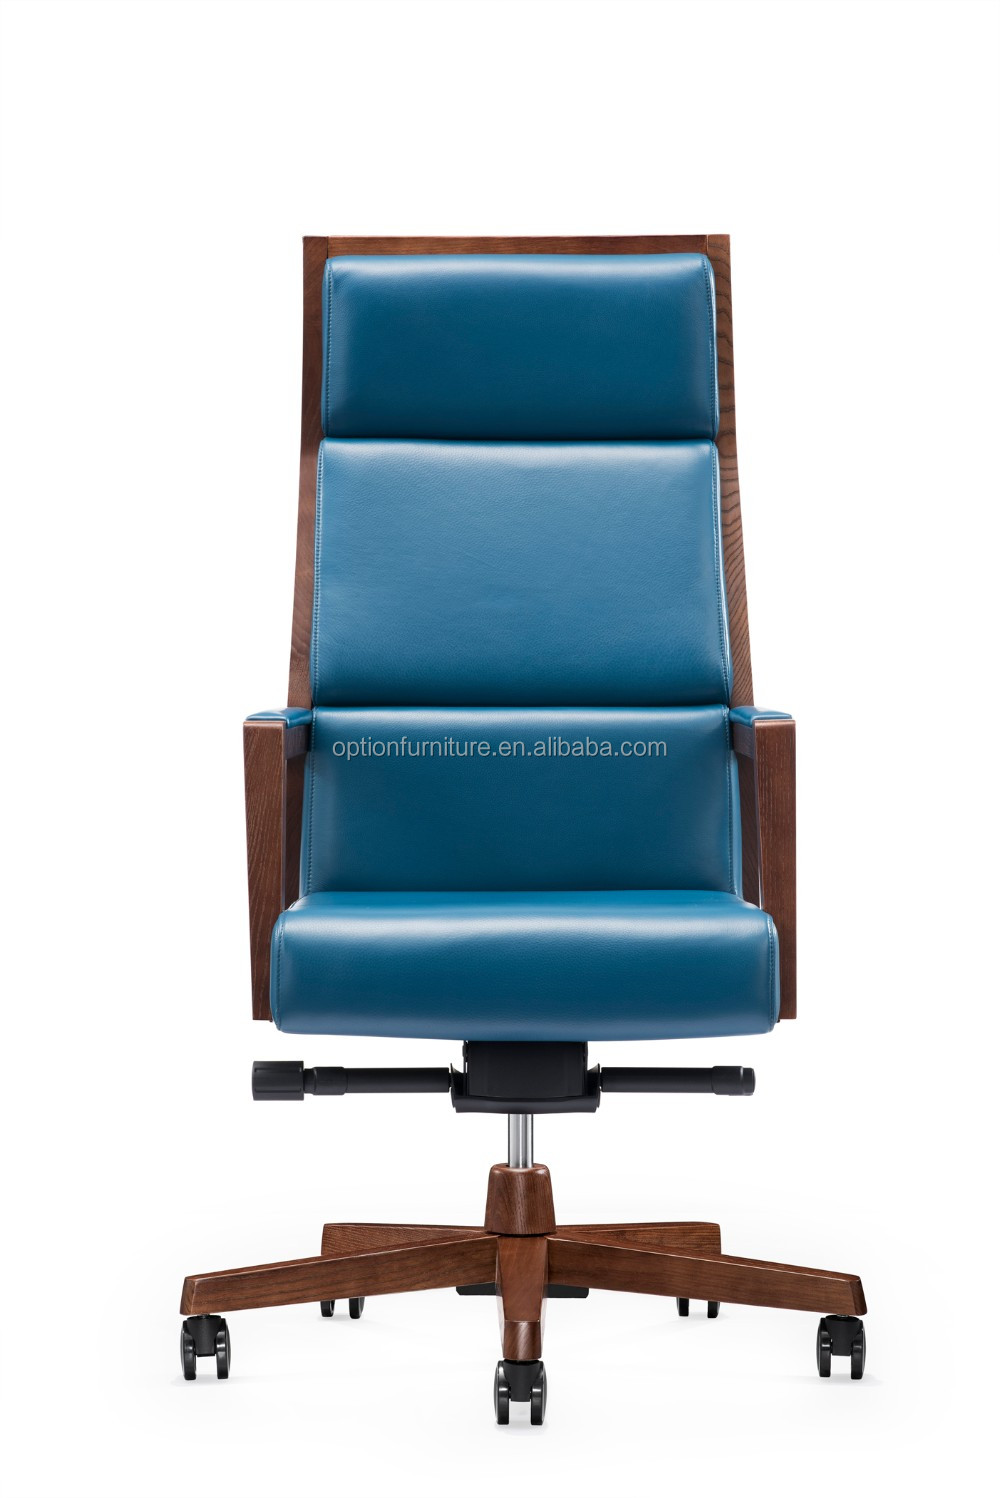 Excellent quality electric relax lounge chair with wheel